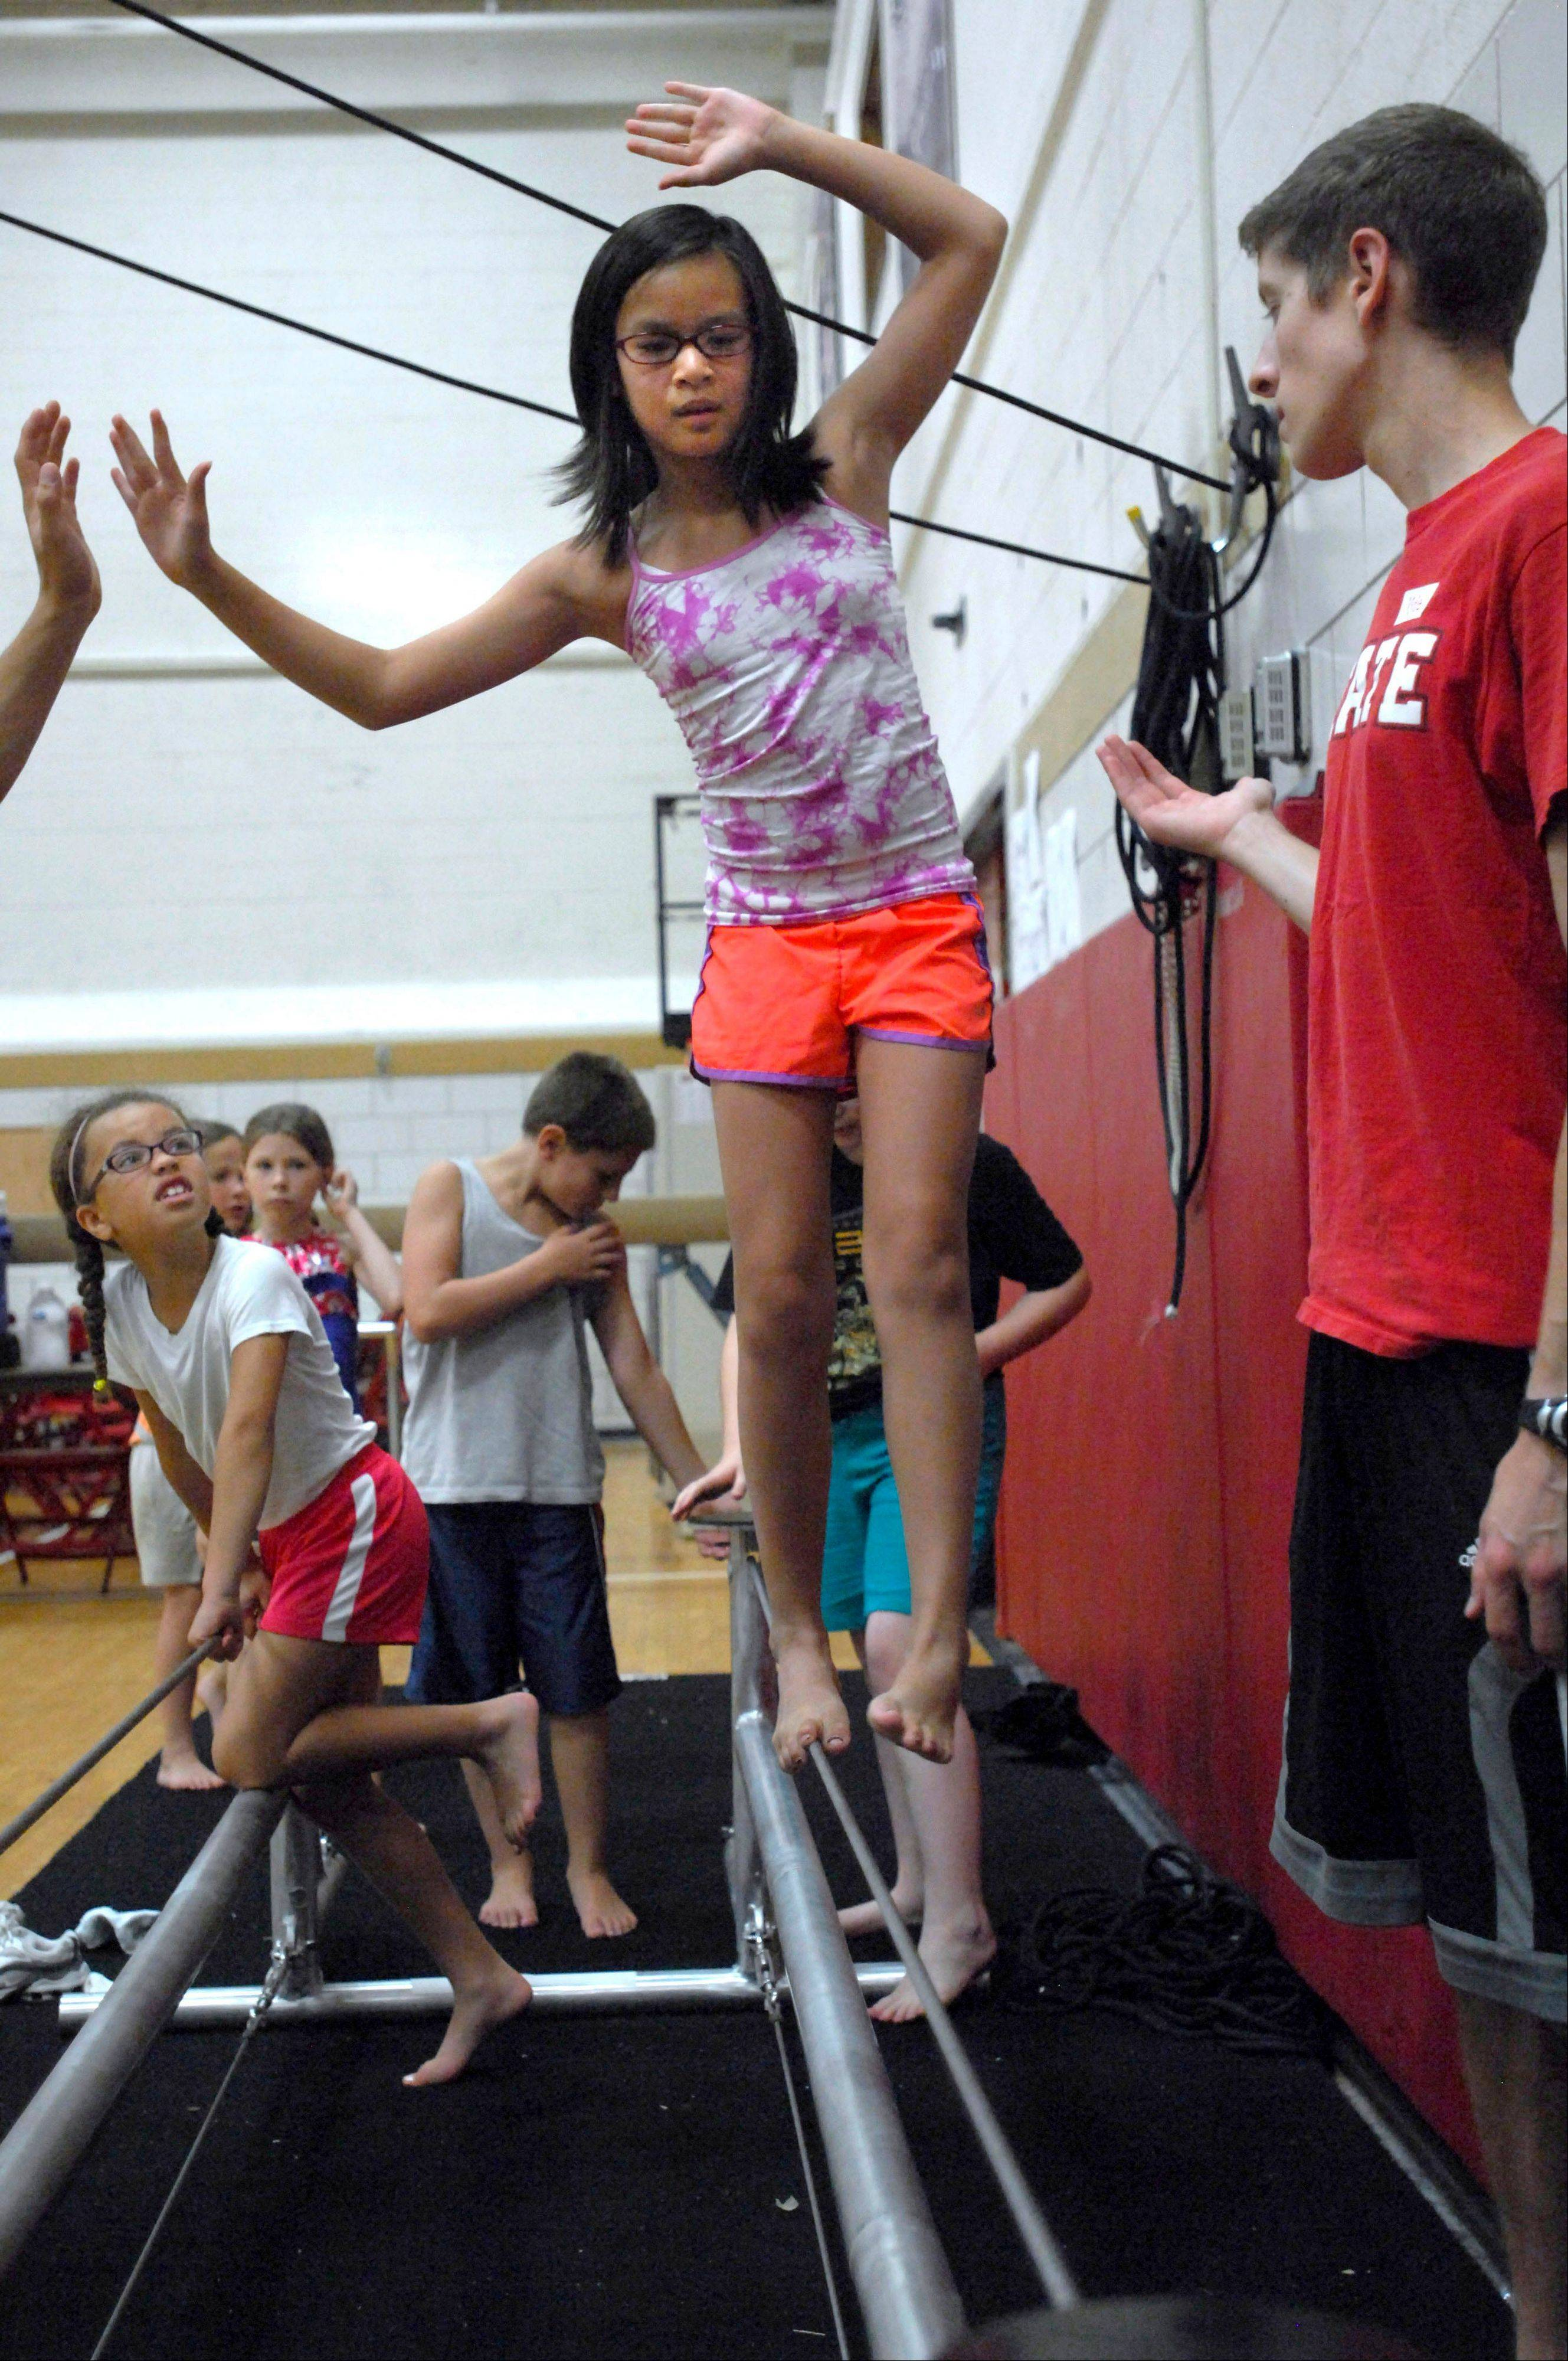 Alex Seehuus, 12, of Hudson, Ill., walks a tightrope as Illinois State University senior Kyle Boyer helps her with her balance as she practices during circus camp at Horton Fieldhouse in Normal.